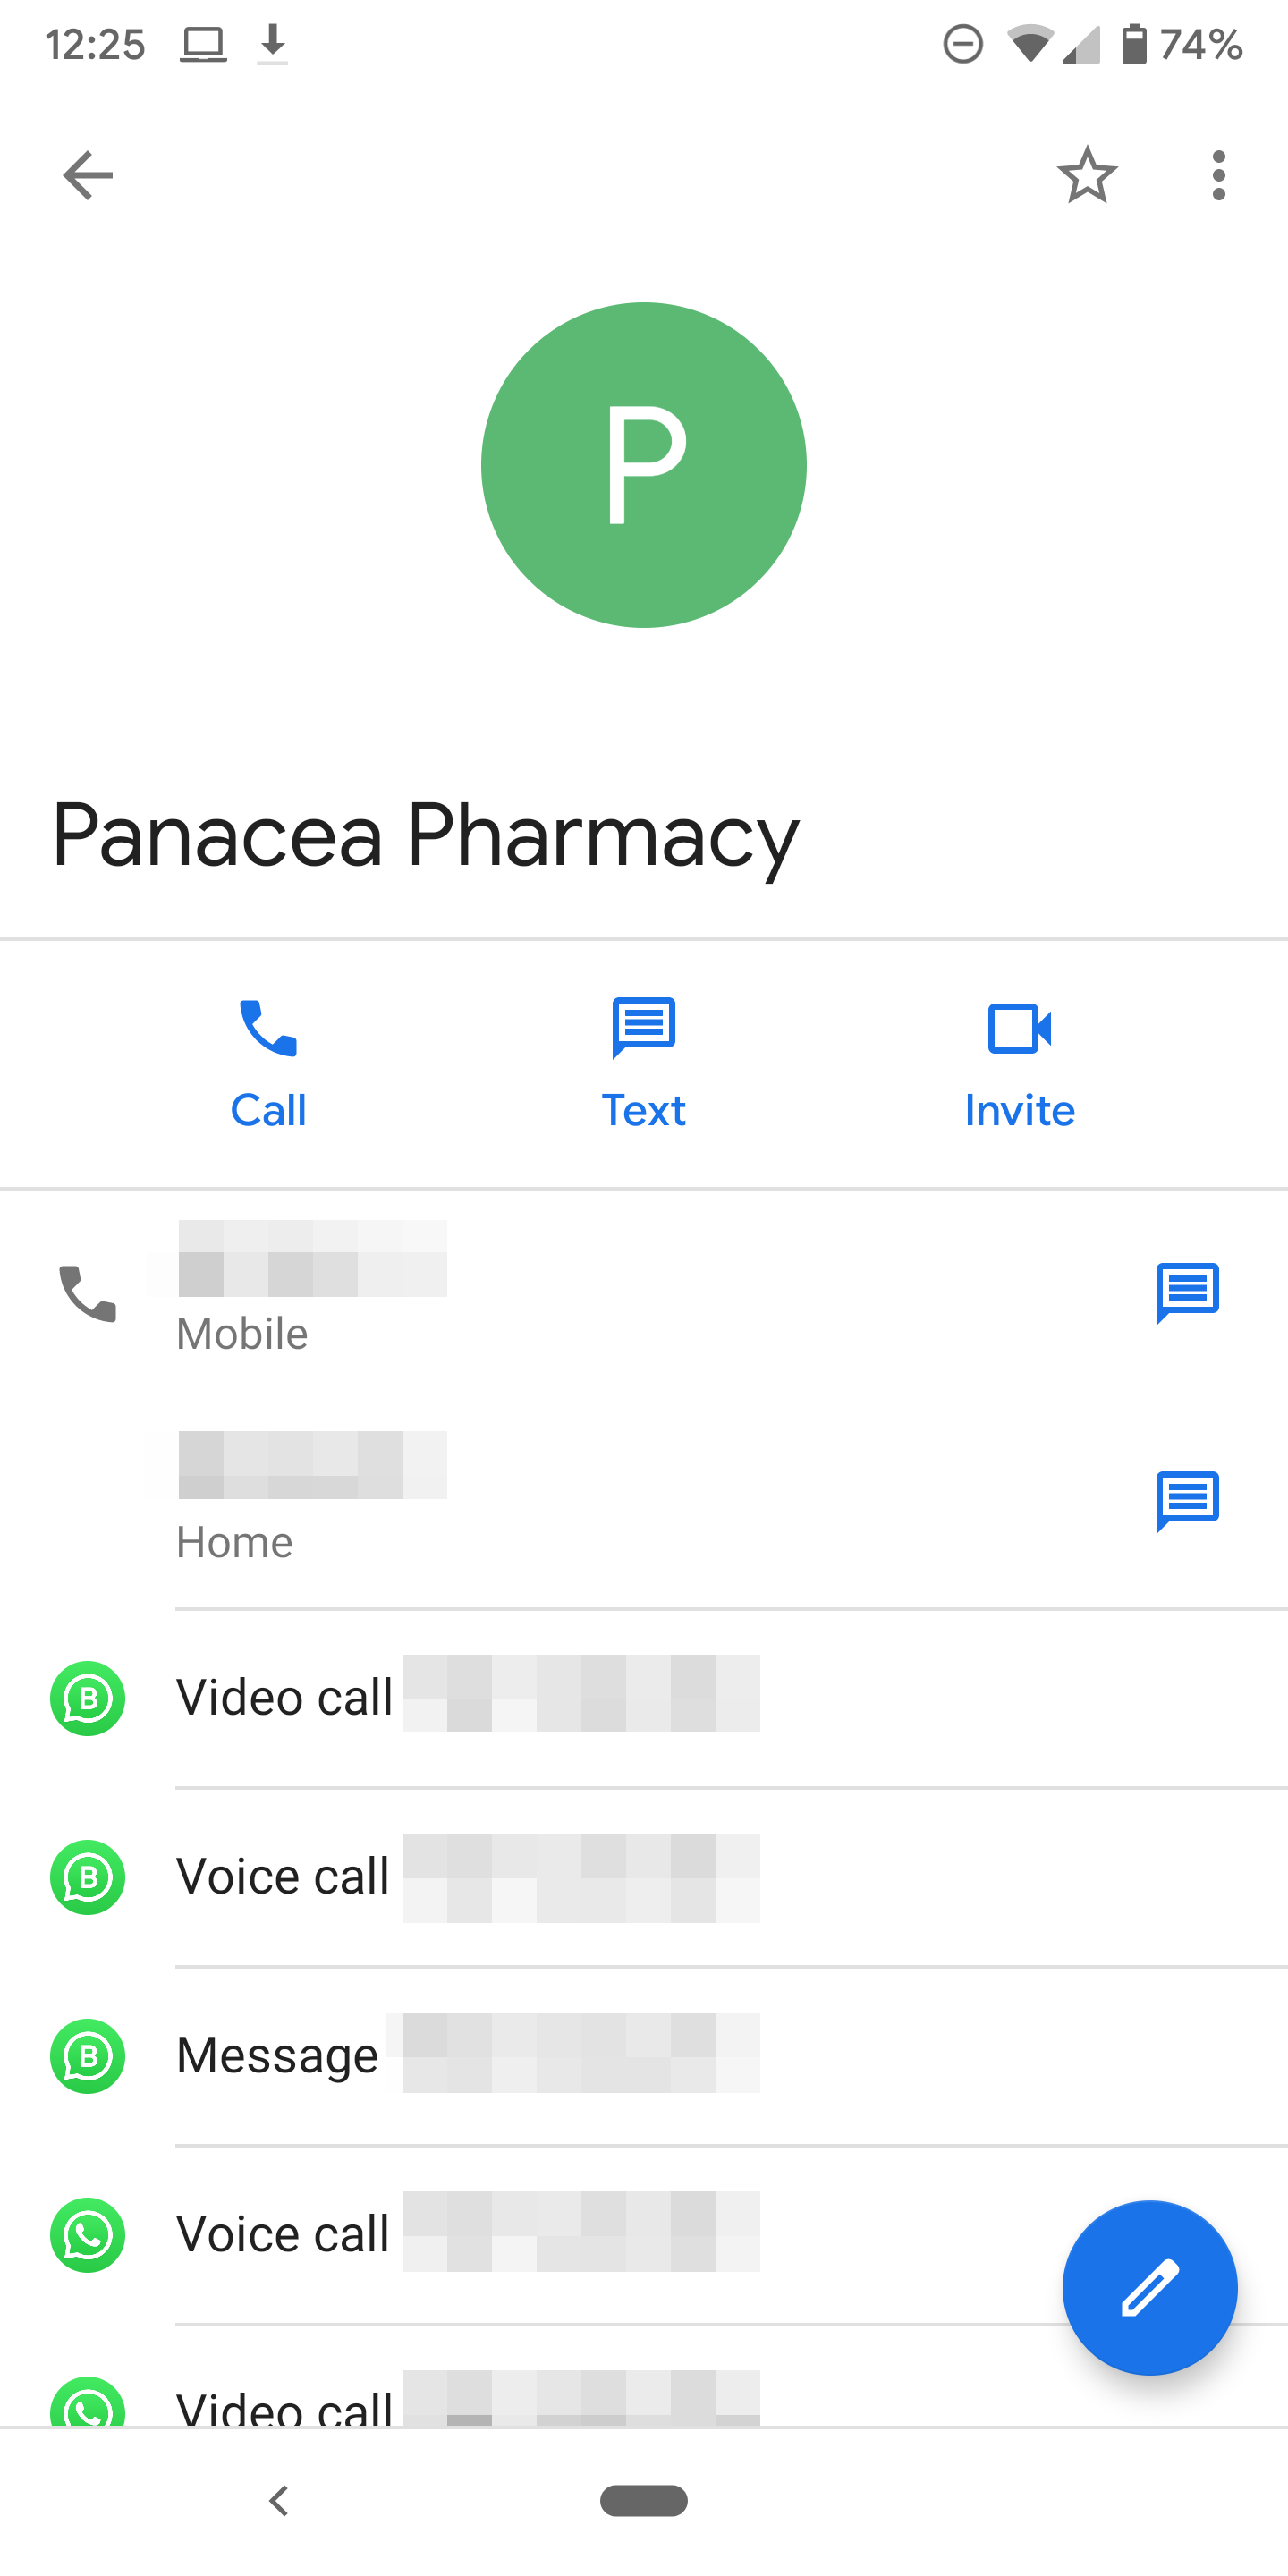 Google Contacts 3 5 7 improves dark mode settings [APK Download]